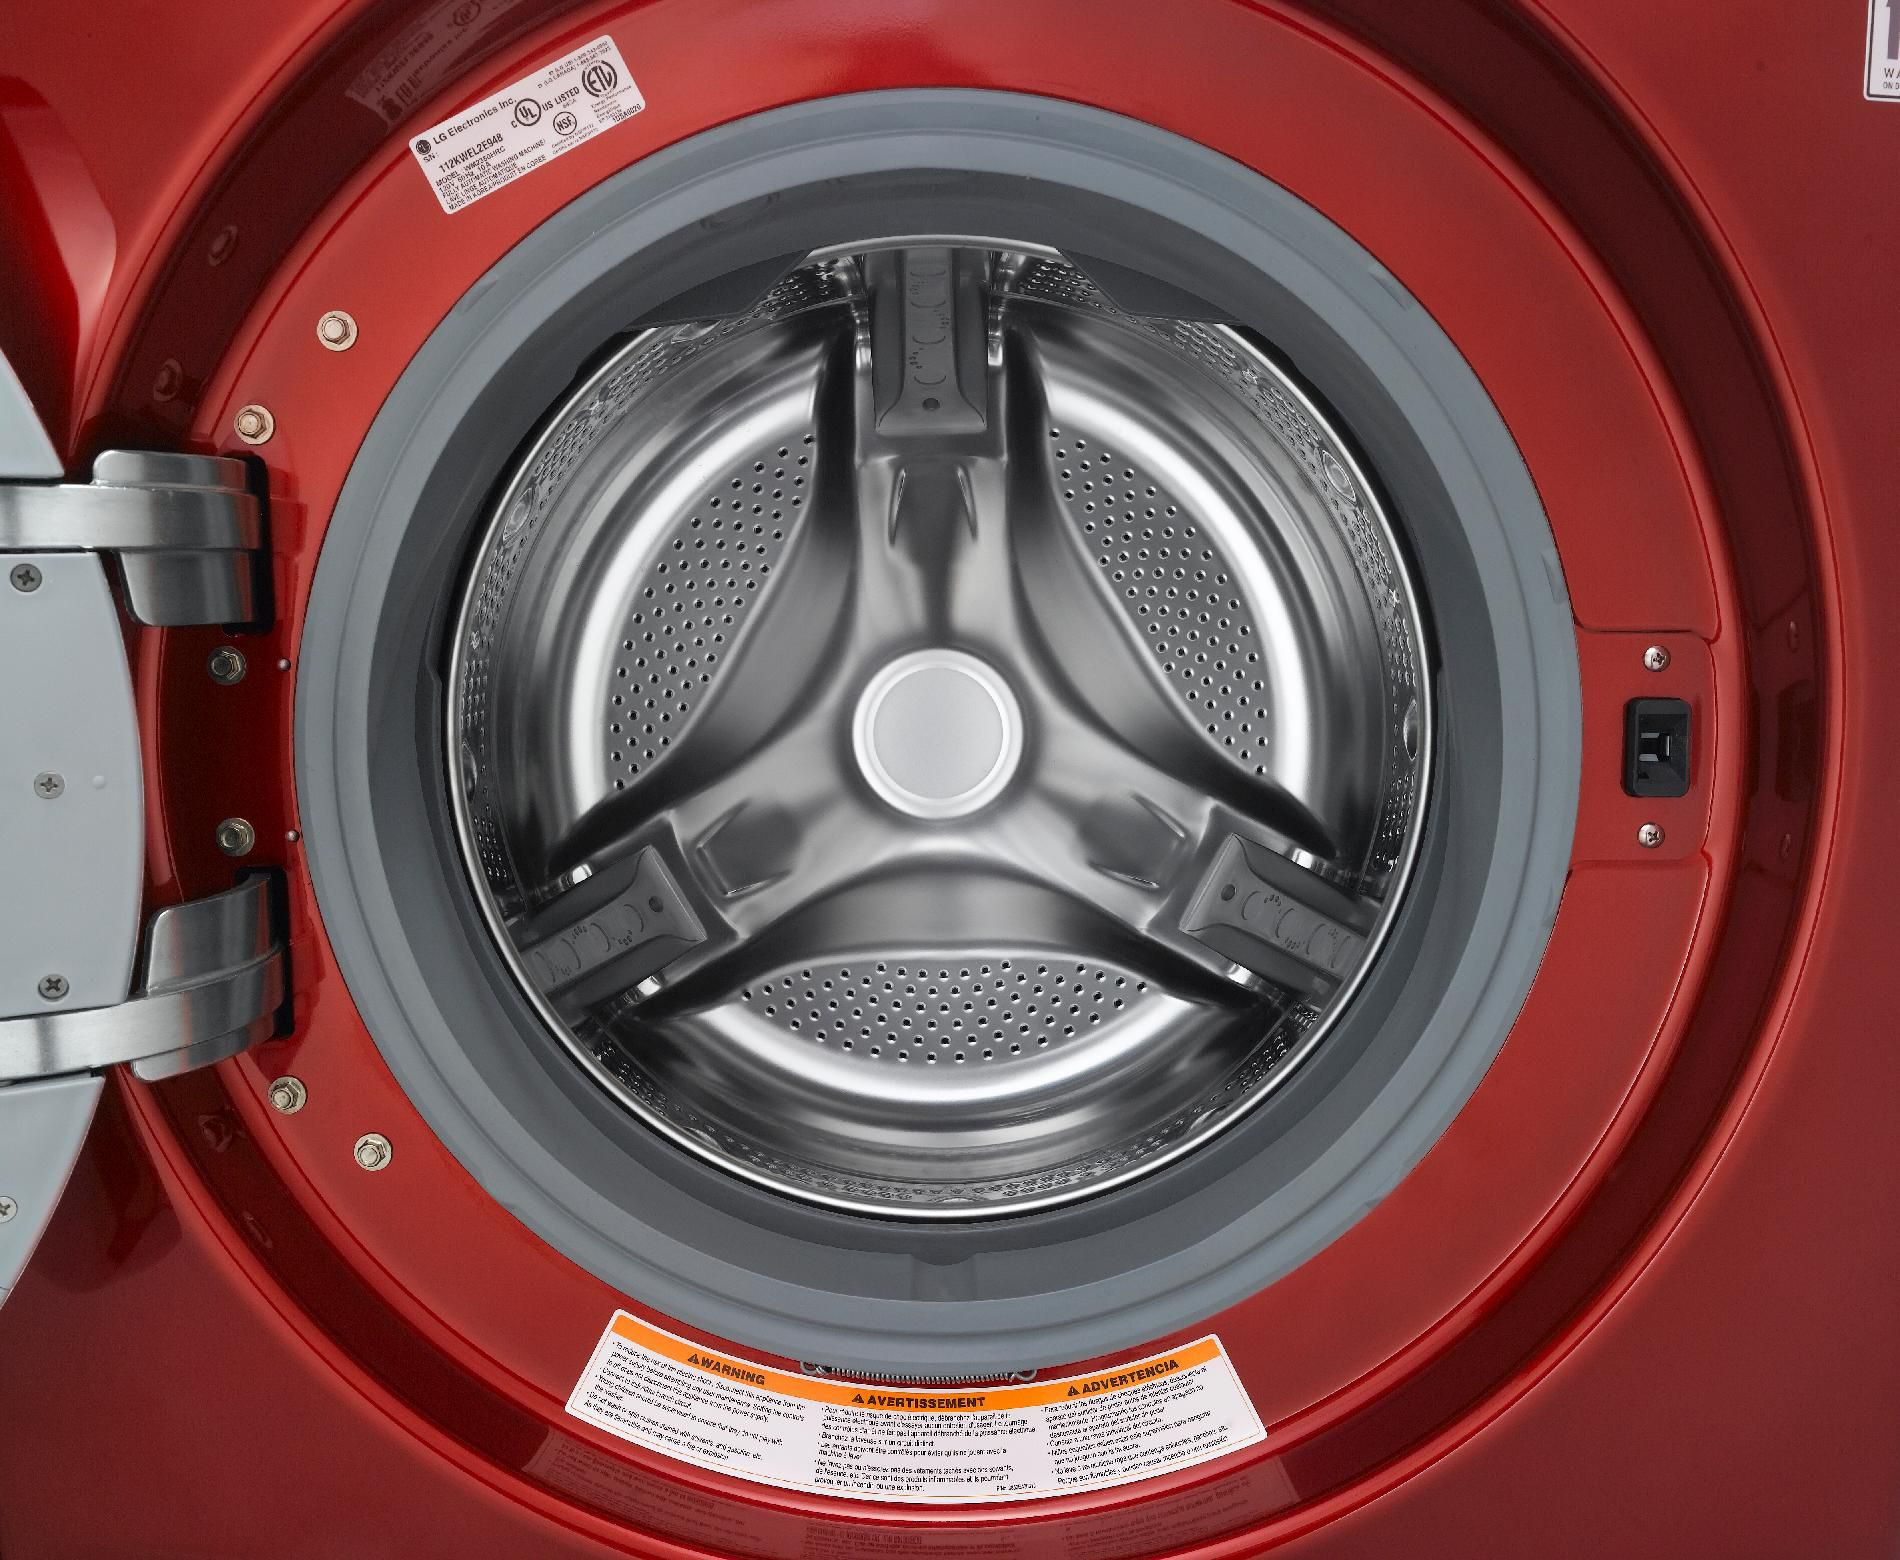 LG 3.7 cu. ft. Steam Front-Load Washer - Red